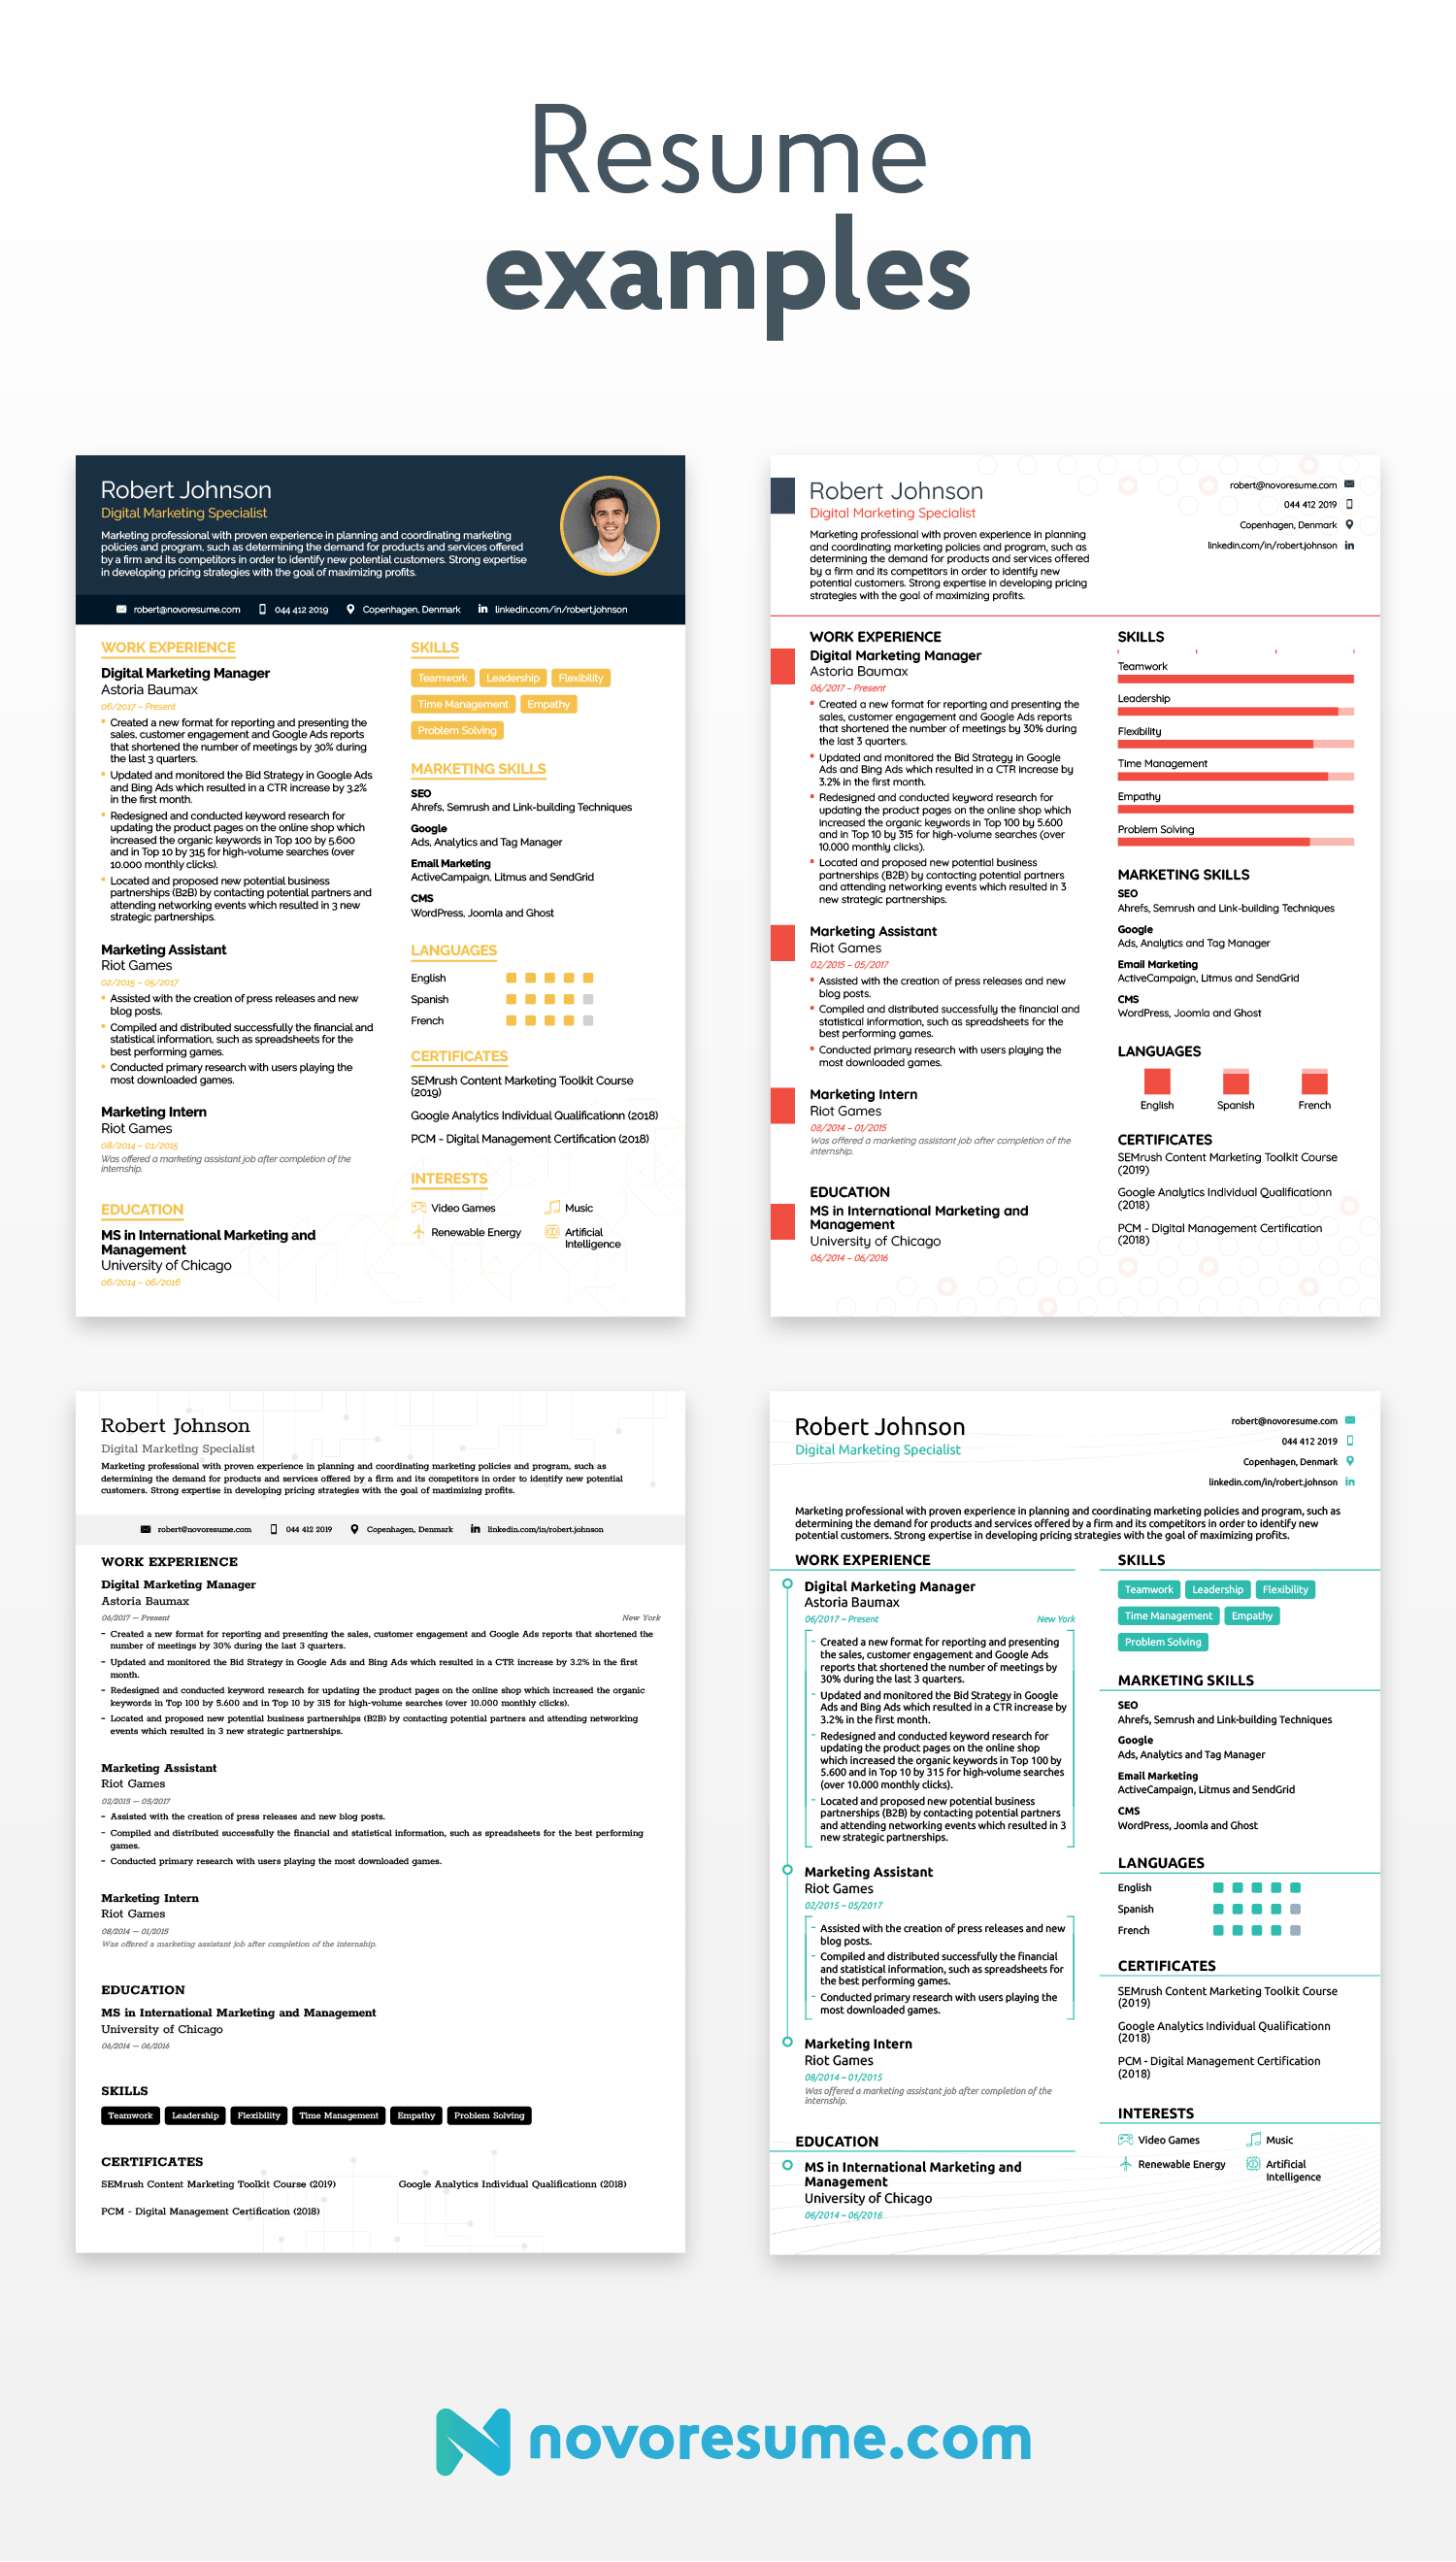 job search resume examples